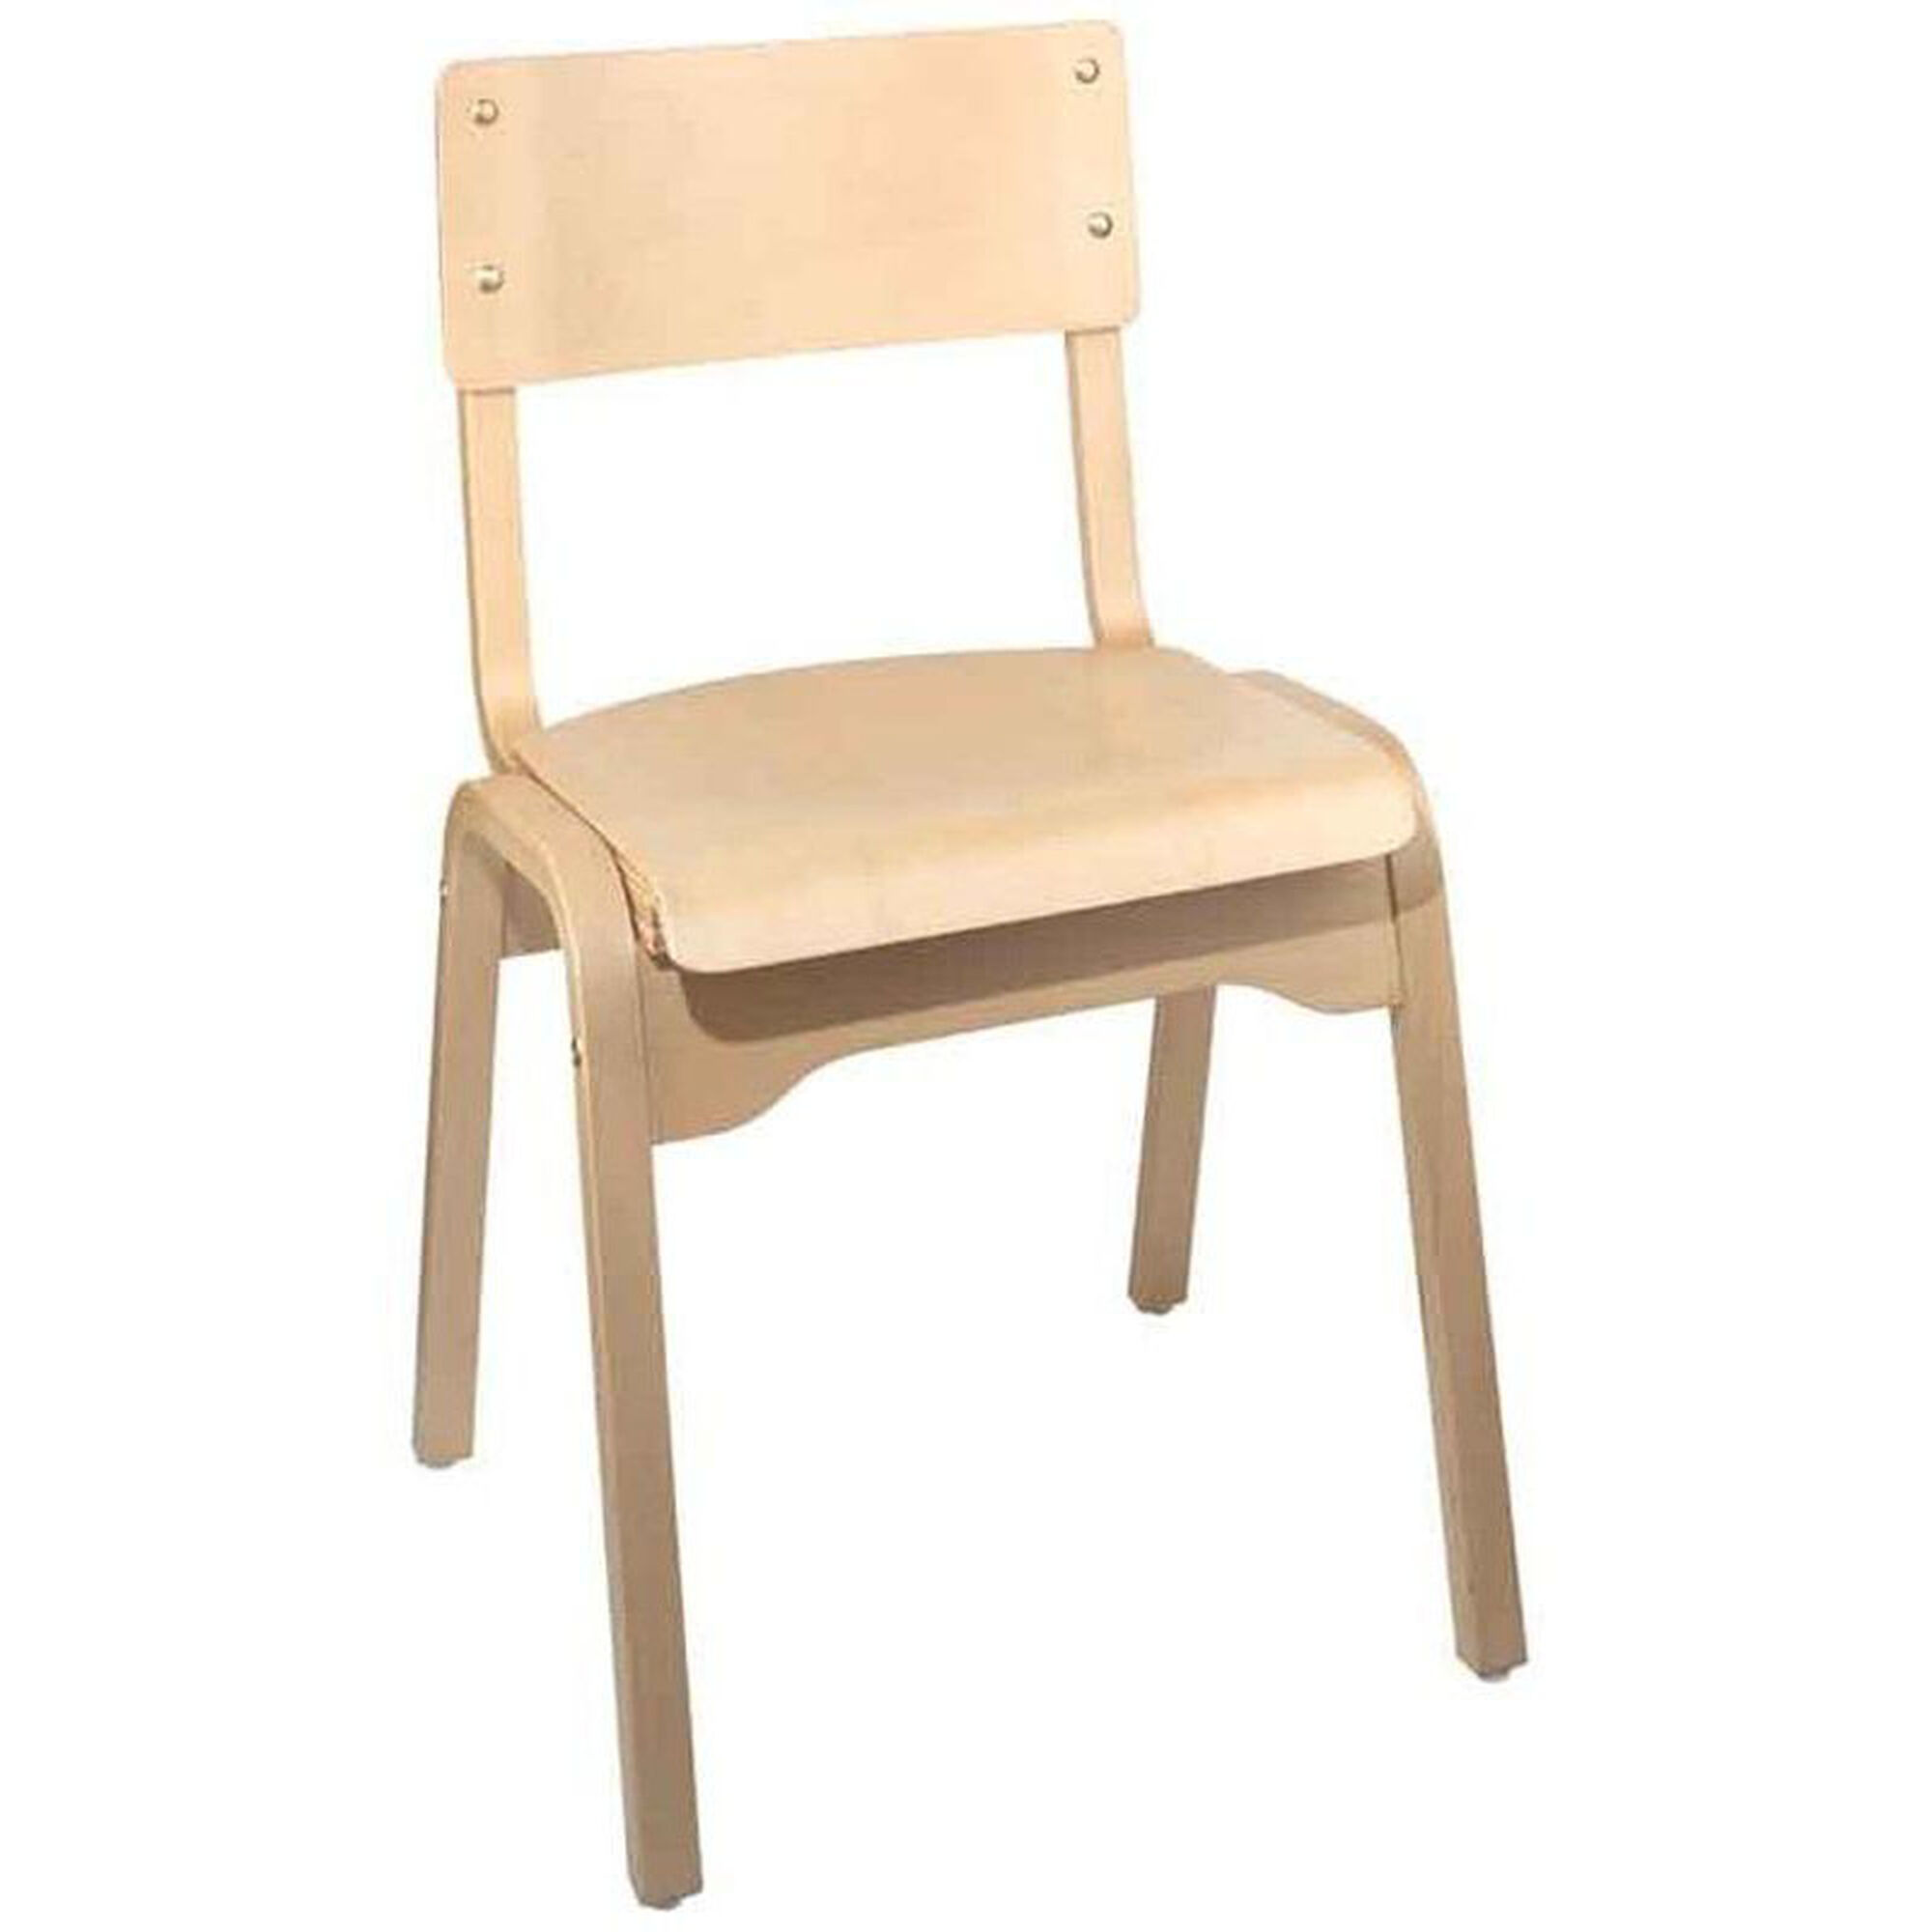 carlo armless chair wood seat carlo stacking chair. Black Bedroom Furniture Sets. Home Design Ideas